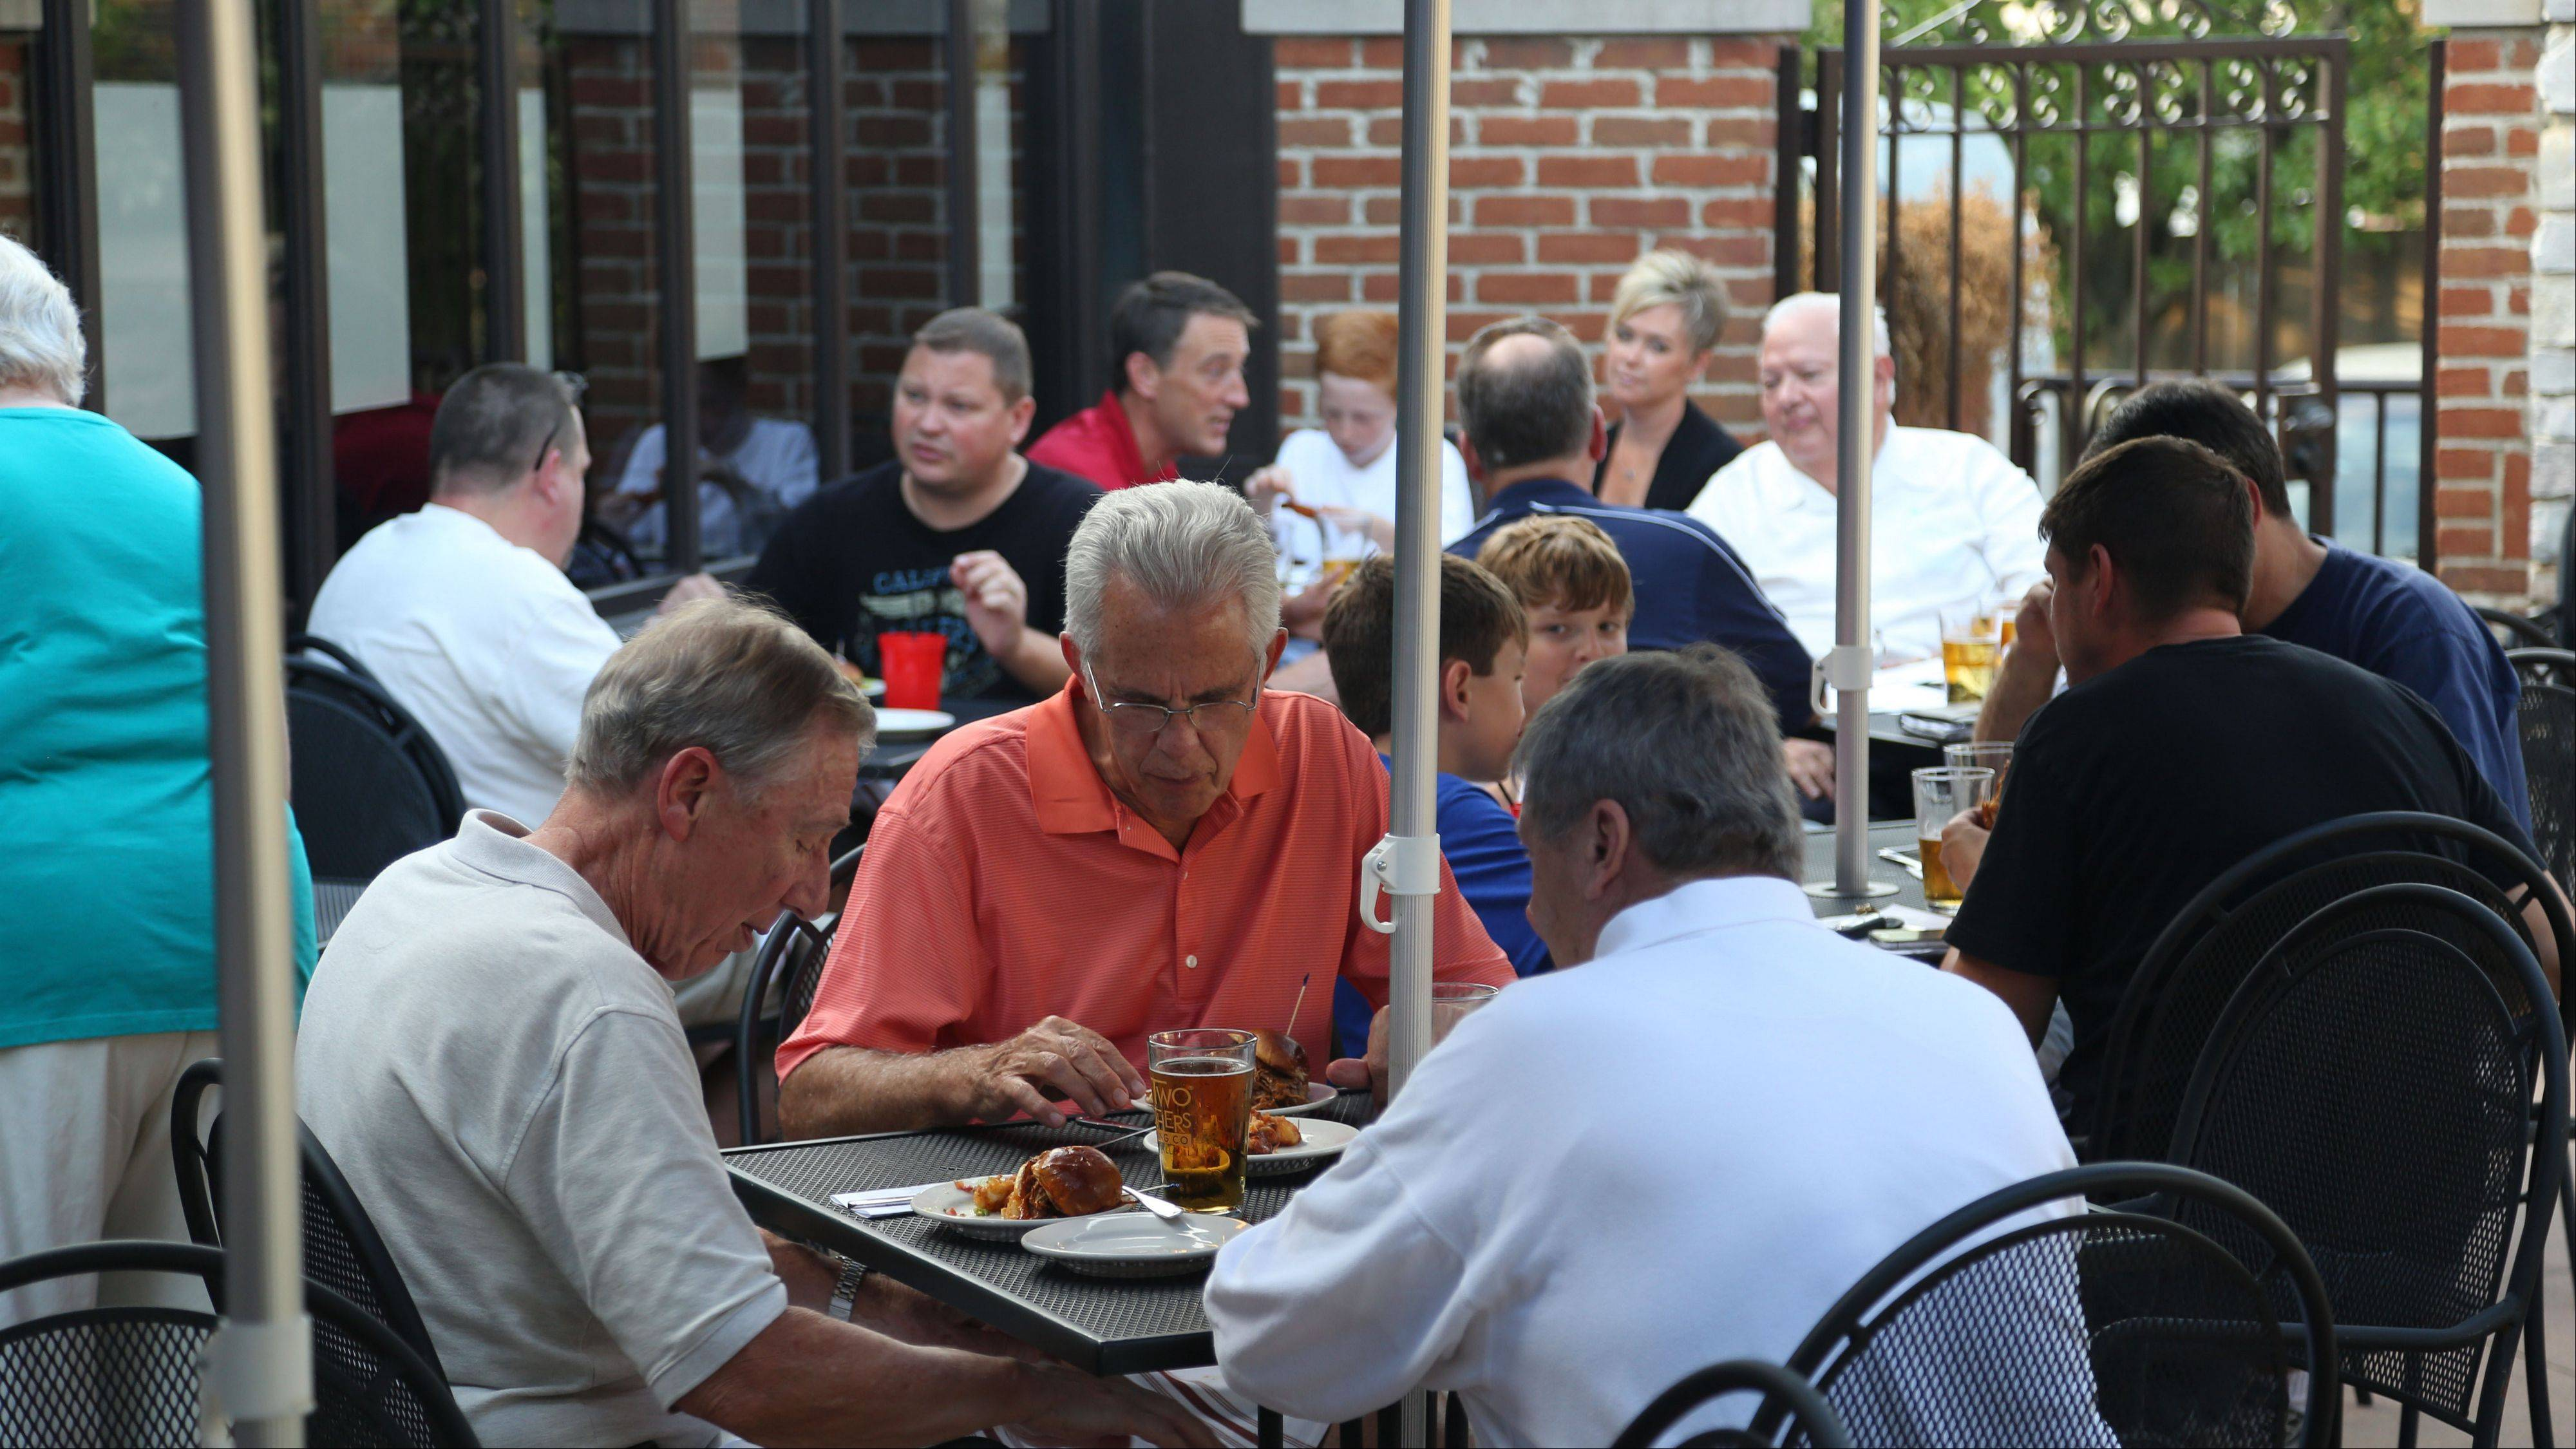 Subscribers participate in a Fantasy Football preview event Monday hosted by Daily Herald columnist John Dietz, Bears beat writer Bob LeGere and sports writer Joe Aguilar at Rack House Kitchen and Tavern in Arlington Heights.